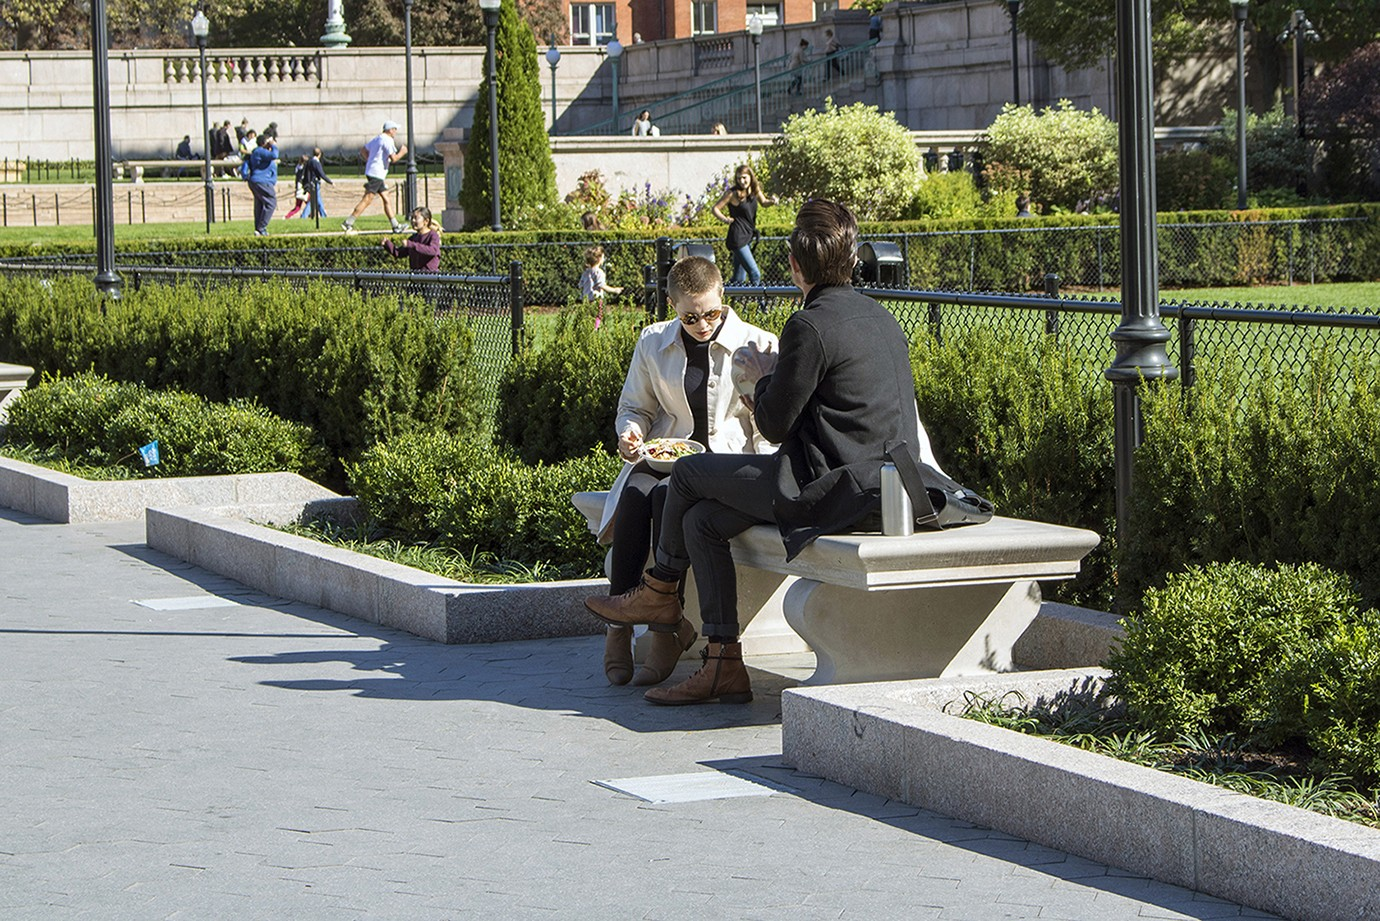 Improvements to the campus environment include new benches near the Butler lawns.